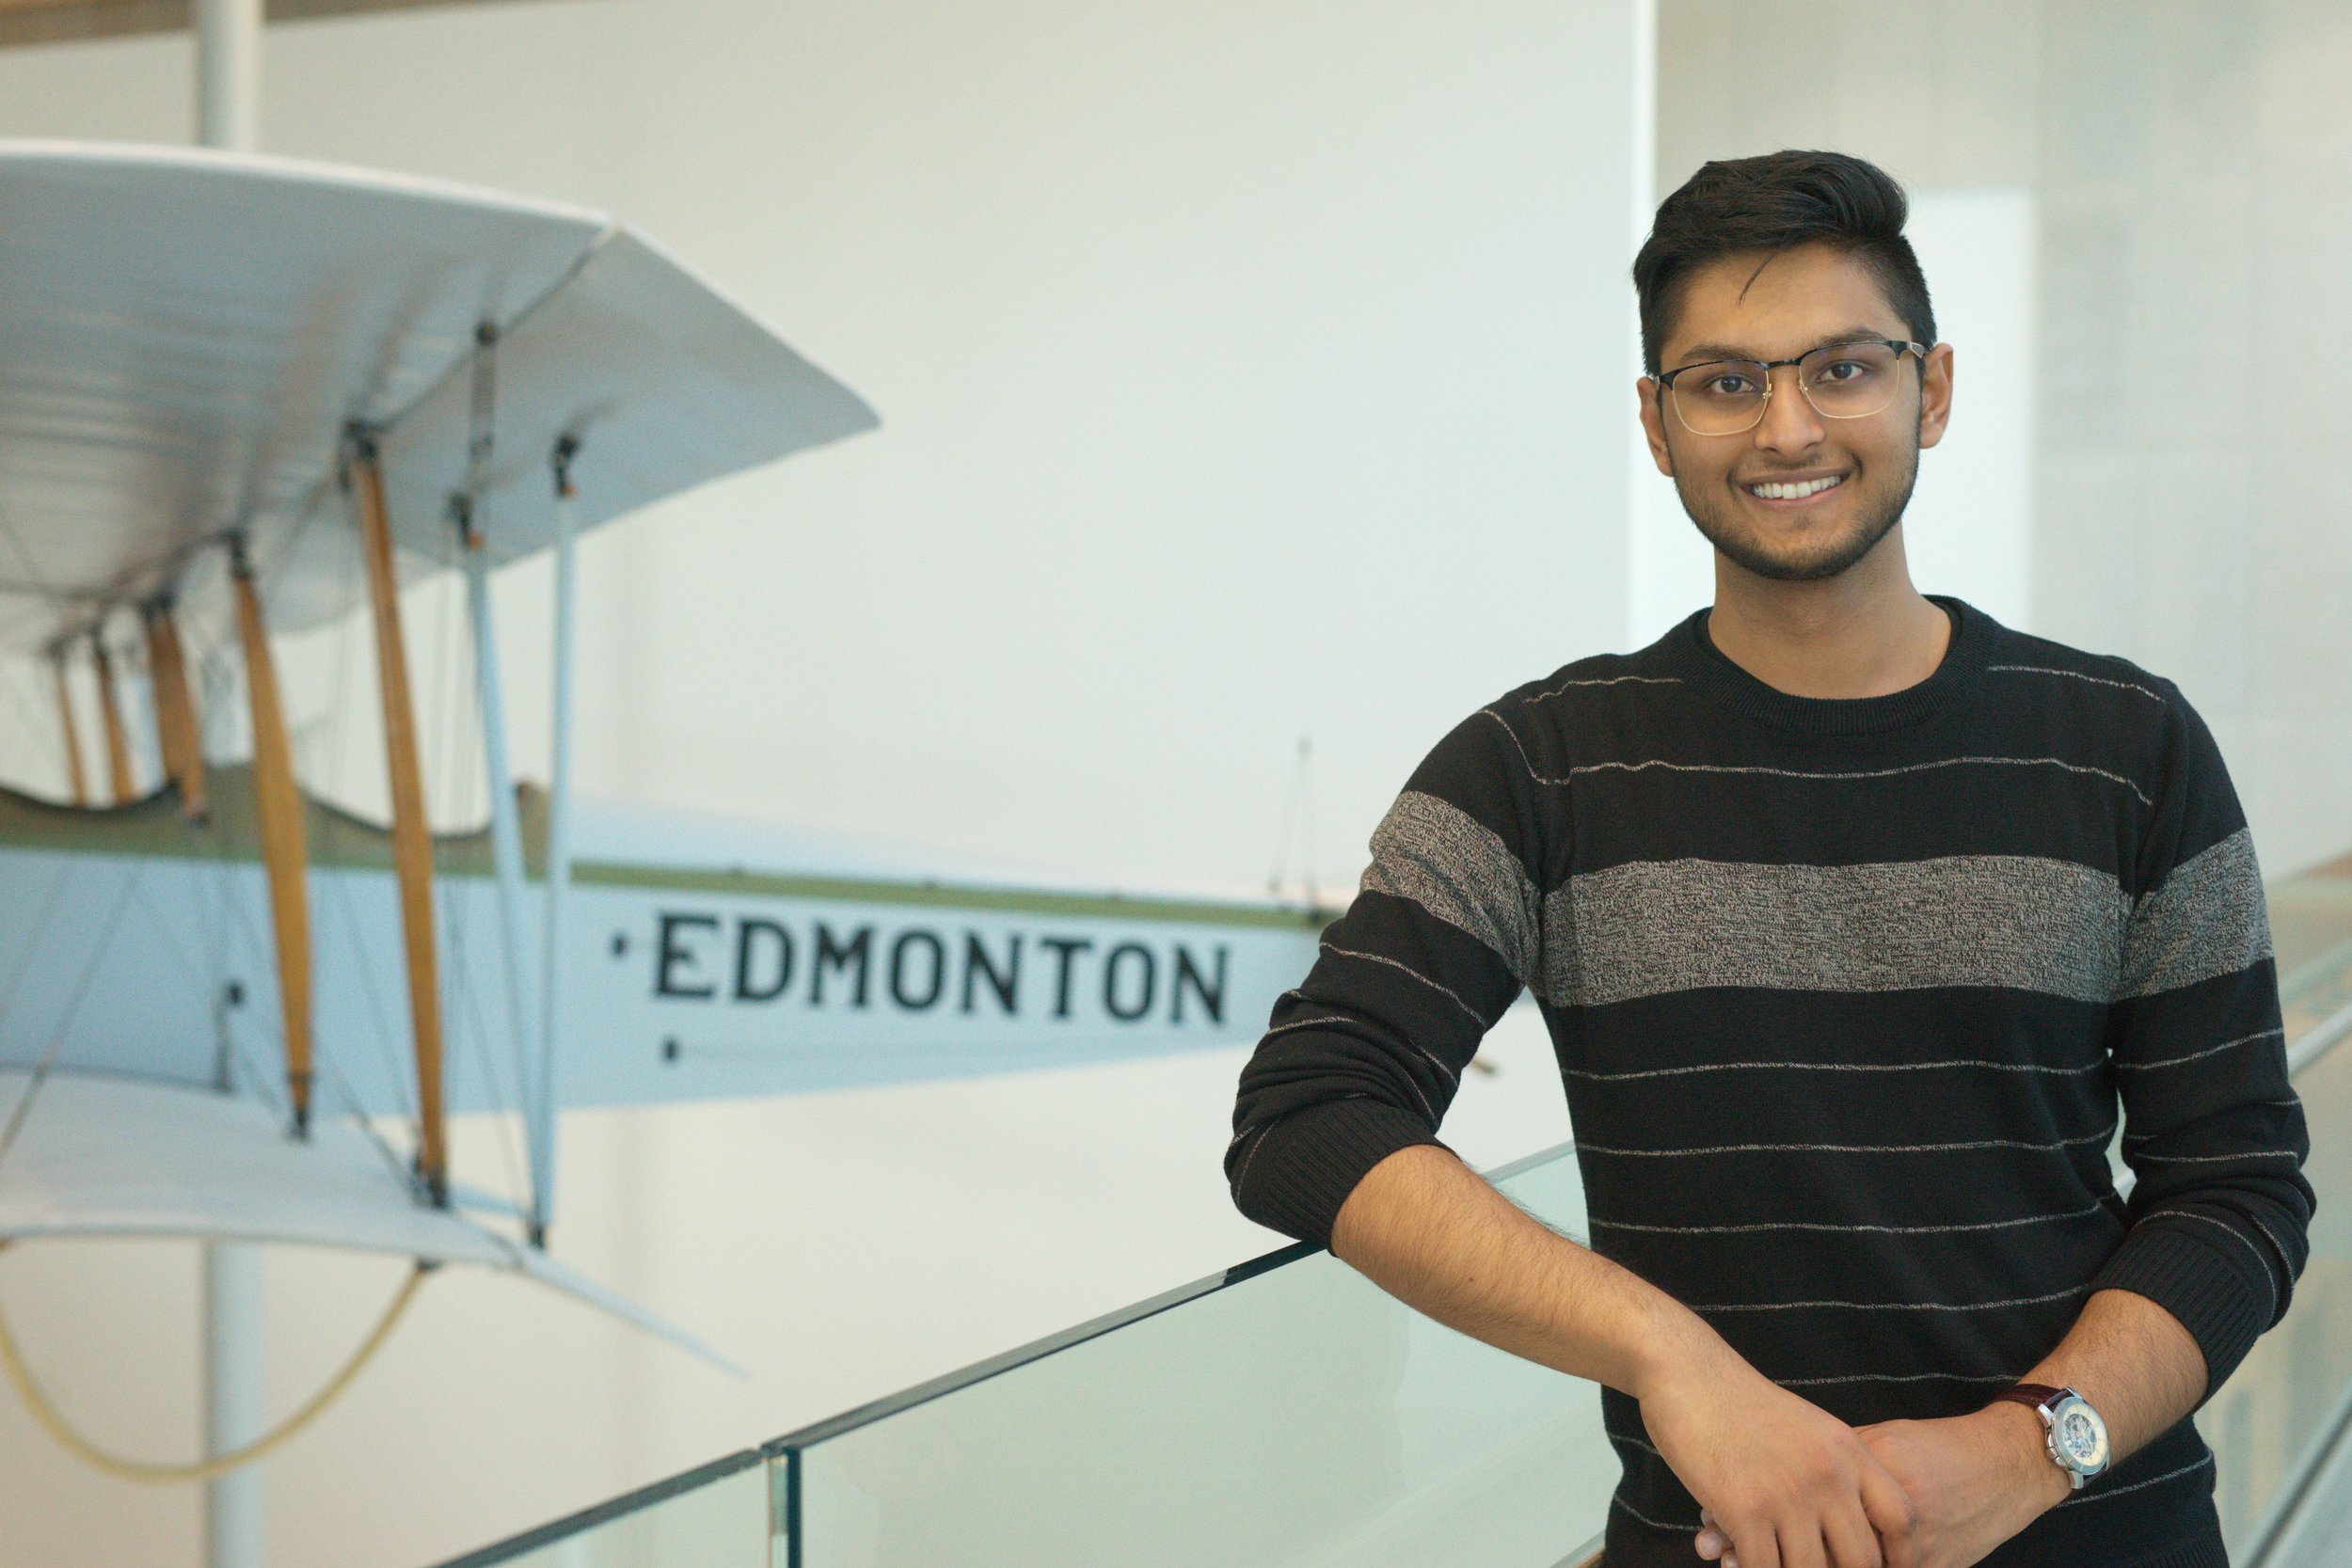 Abyad Rahman  Vice-President Finance  Hello everyone! I'm Abyad and I am an Accounting and Finance student at the University of Alberta. I was a Team Ambassador last year and I am excited to return to AIBC and show you around the beautiful town of Jasper this year. I am involved in clubs within the University, and I enjoy volunteering for community initiatives as well. I hope to make your experiences at AIBC worthwhile and memorable. Outside of school, I interview students and entrepreneurs on campus and share their Undiscovered Experiences on LinkedIn. Fun fact: I grew up in Bangladesh before moving to Canada at the age of 12!